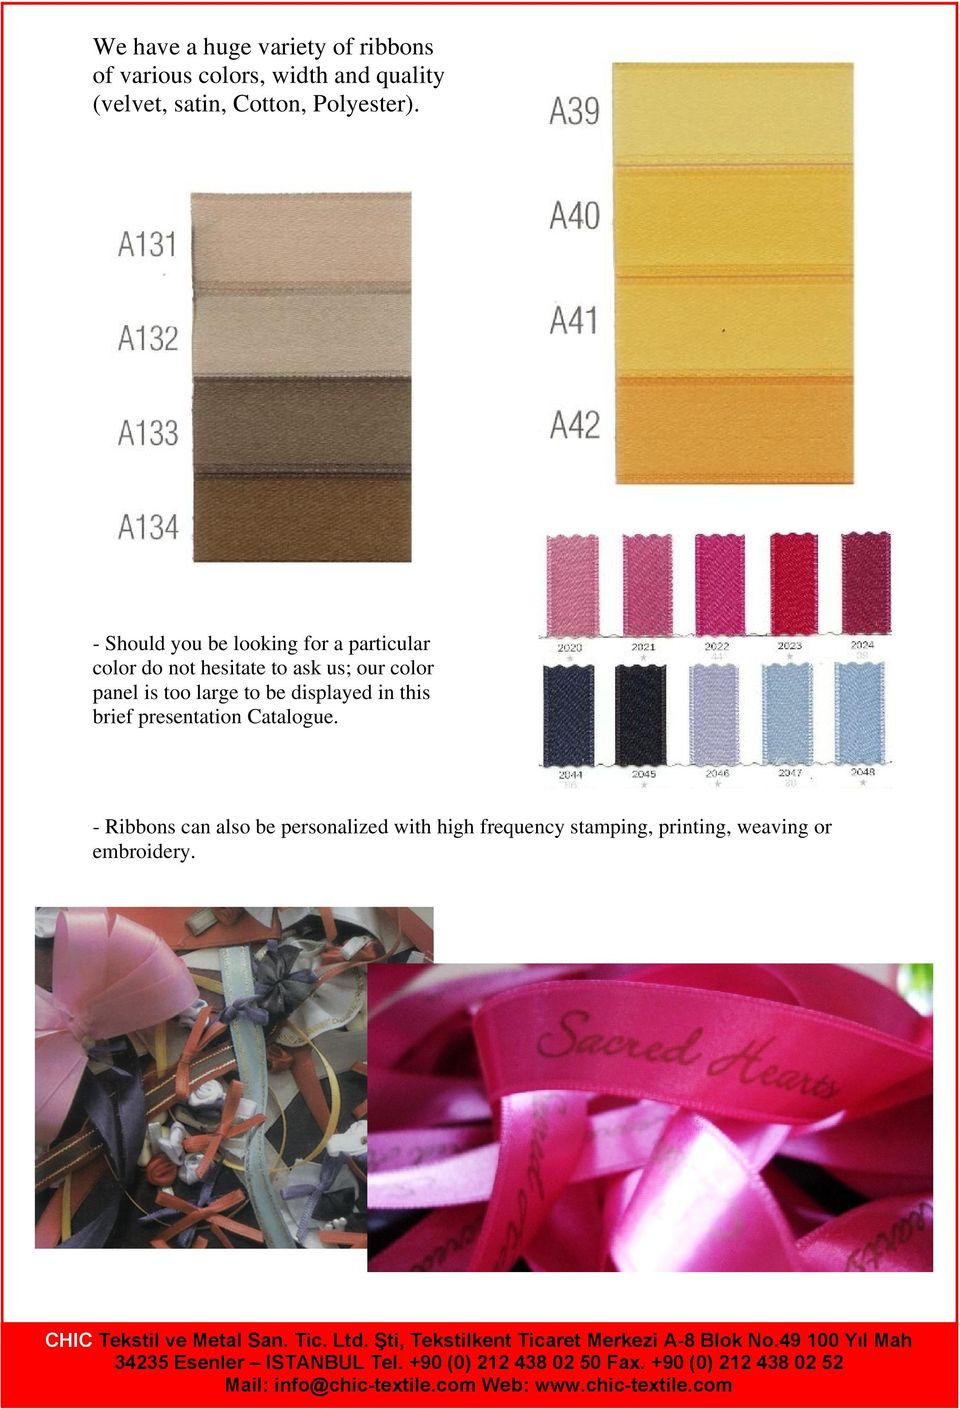 - Should you be looking for a particular color do not hesitate to ask us; our color panel